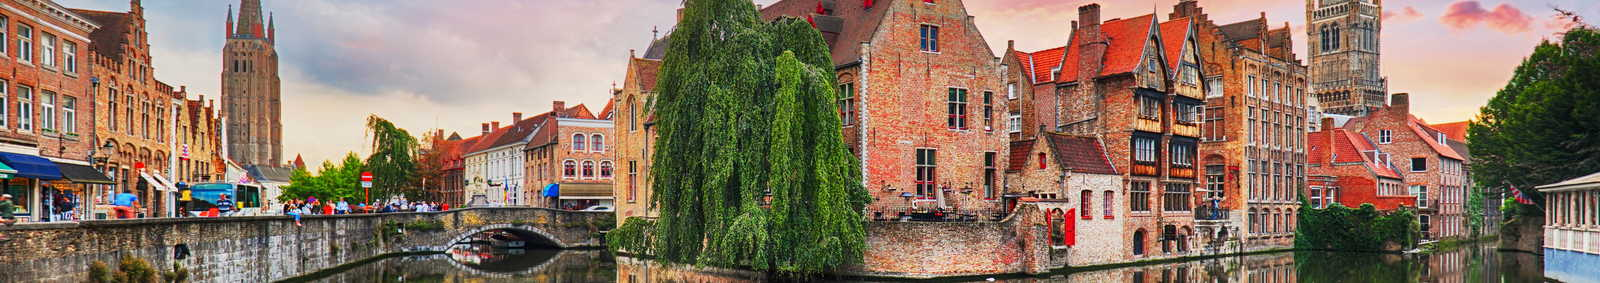 bruges_waterways